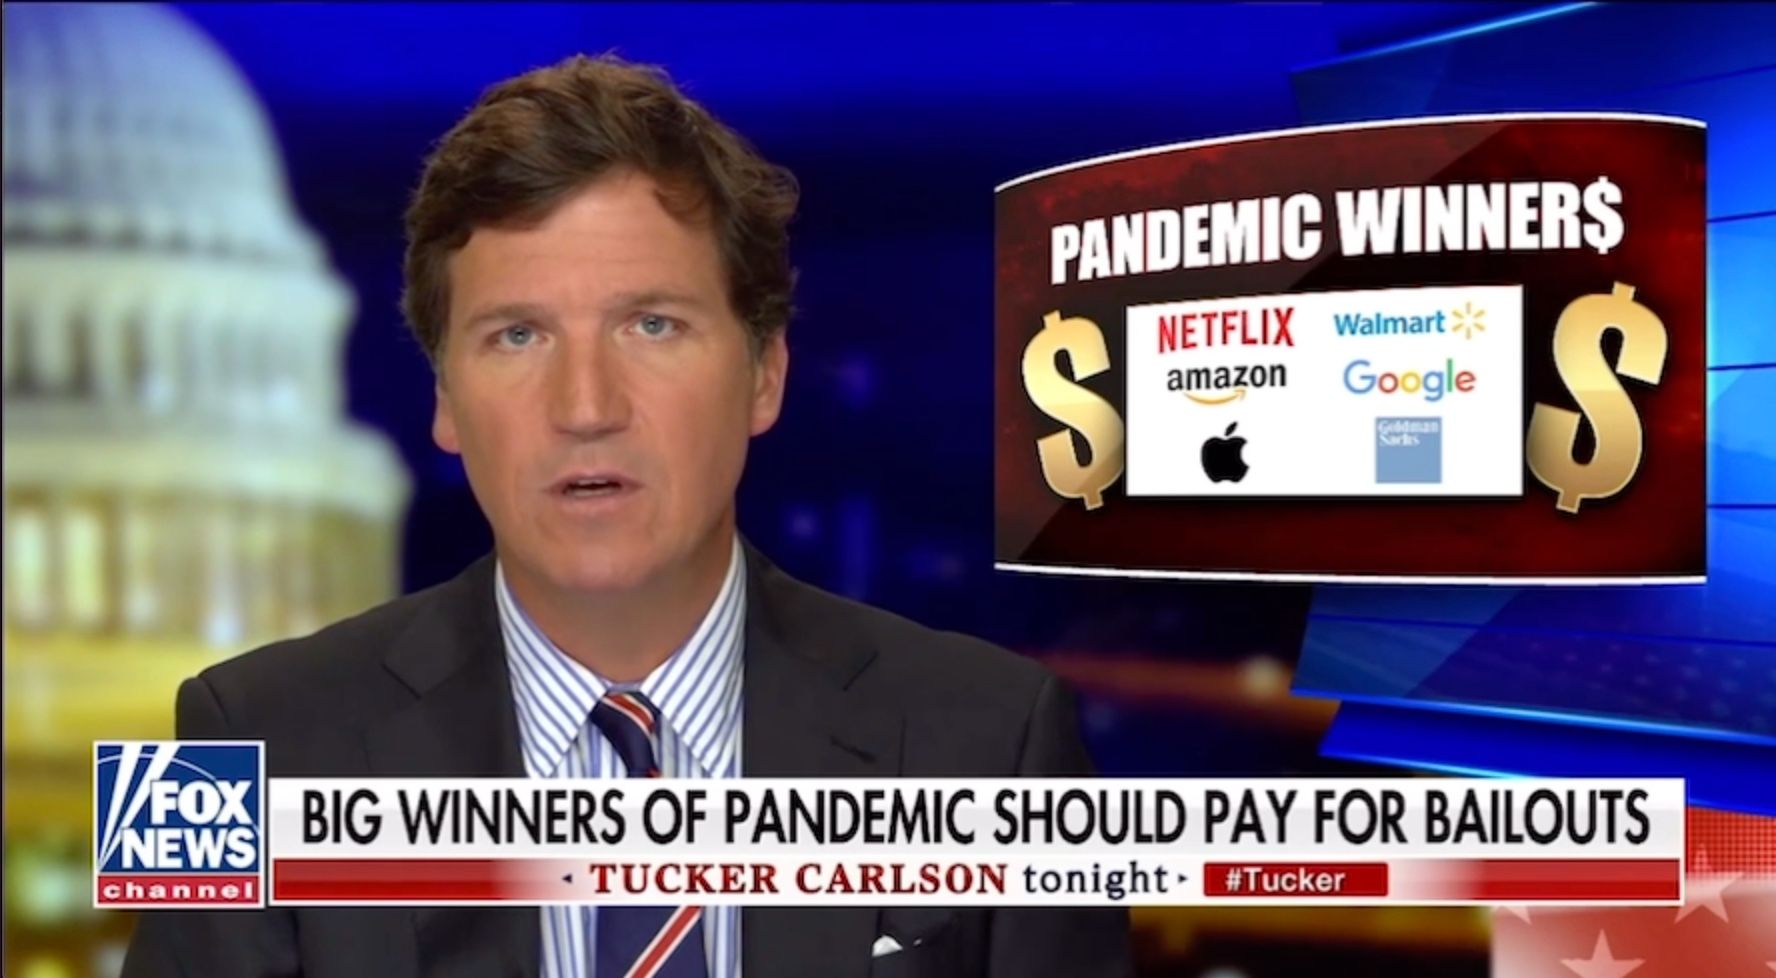 WATCH: Tucker Carlson blasts Democrats and corporate giants for bankrupting America's small businesses and the working class